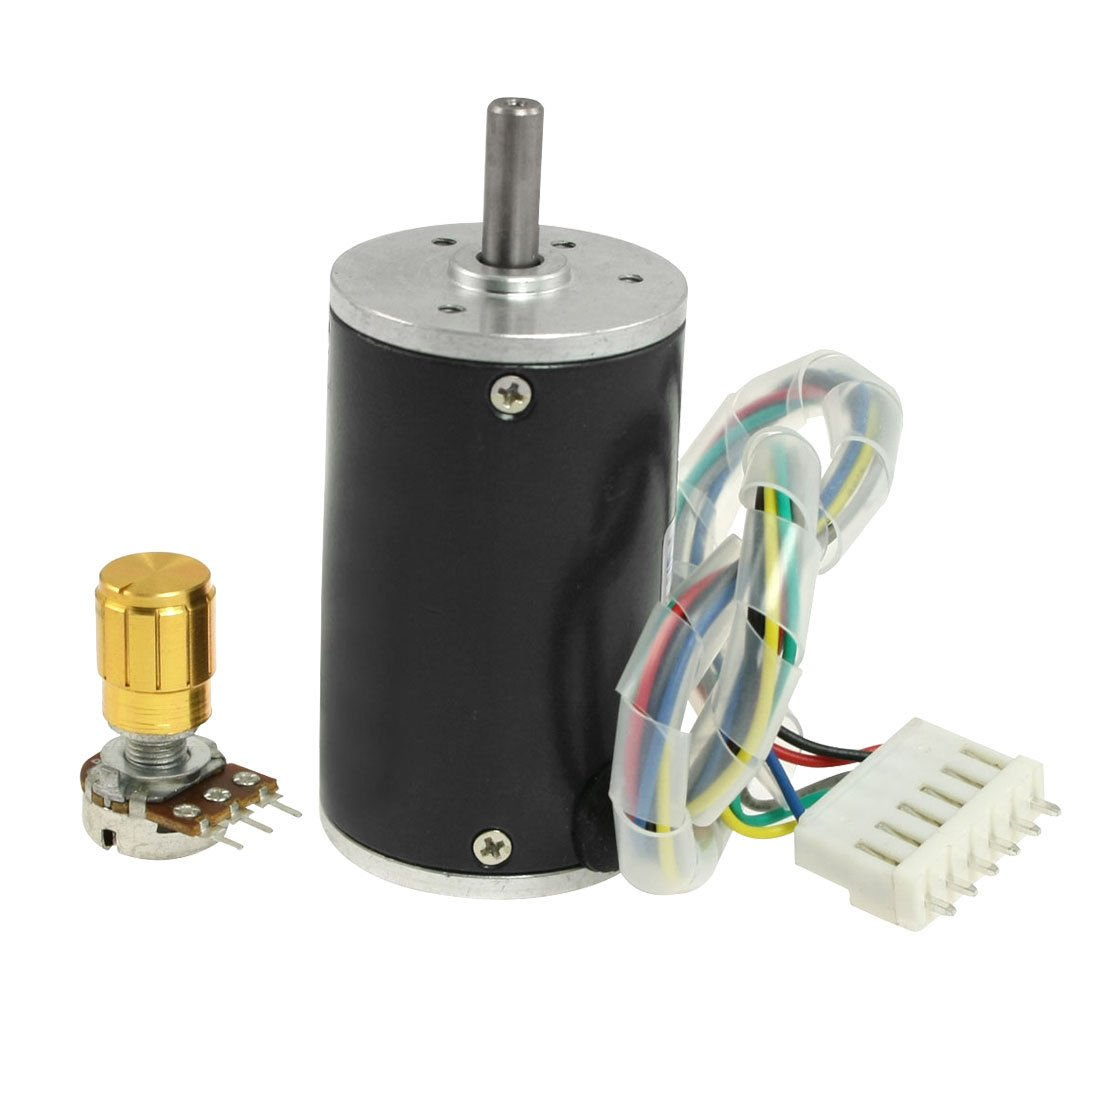 DC 12V 3000RPM 0.5A 120G.cm Brushless Speed Control Motor